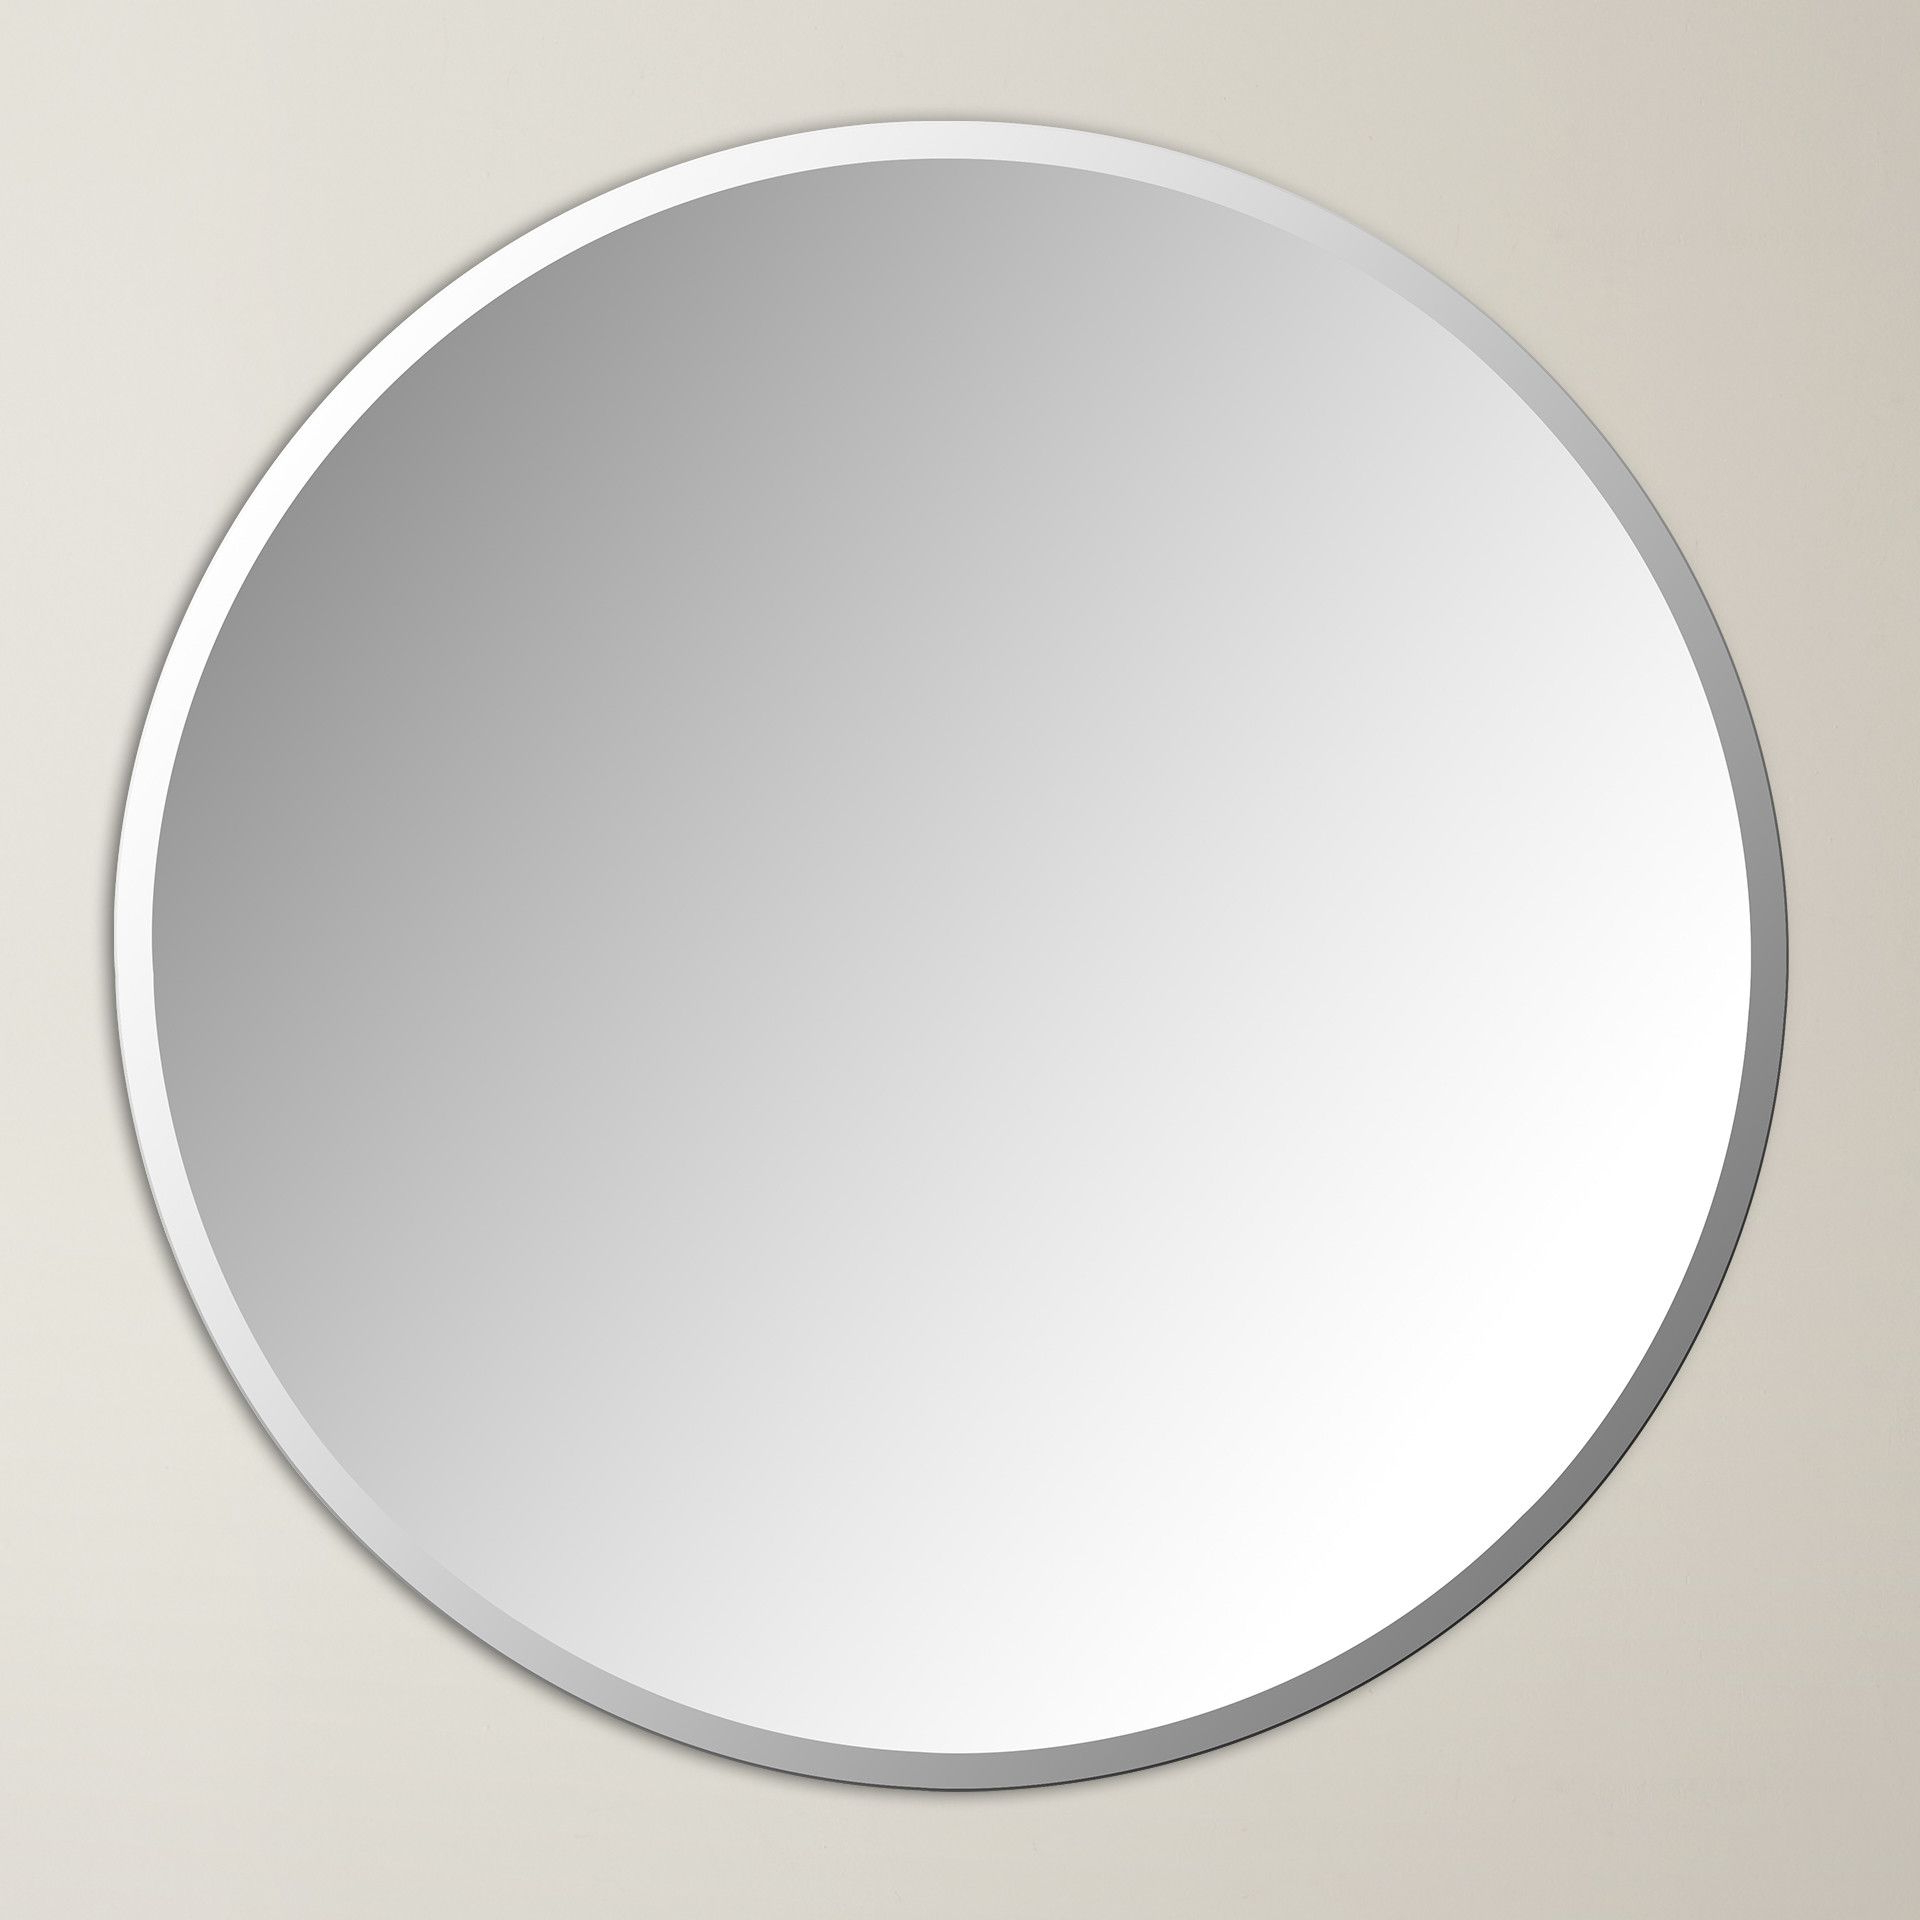 Kayden Accent Mirrors Throughout Most Current Kayden Accent Mirror (Gallery 7 of 20)